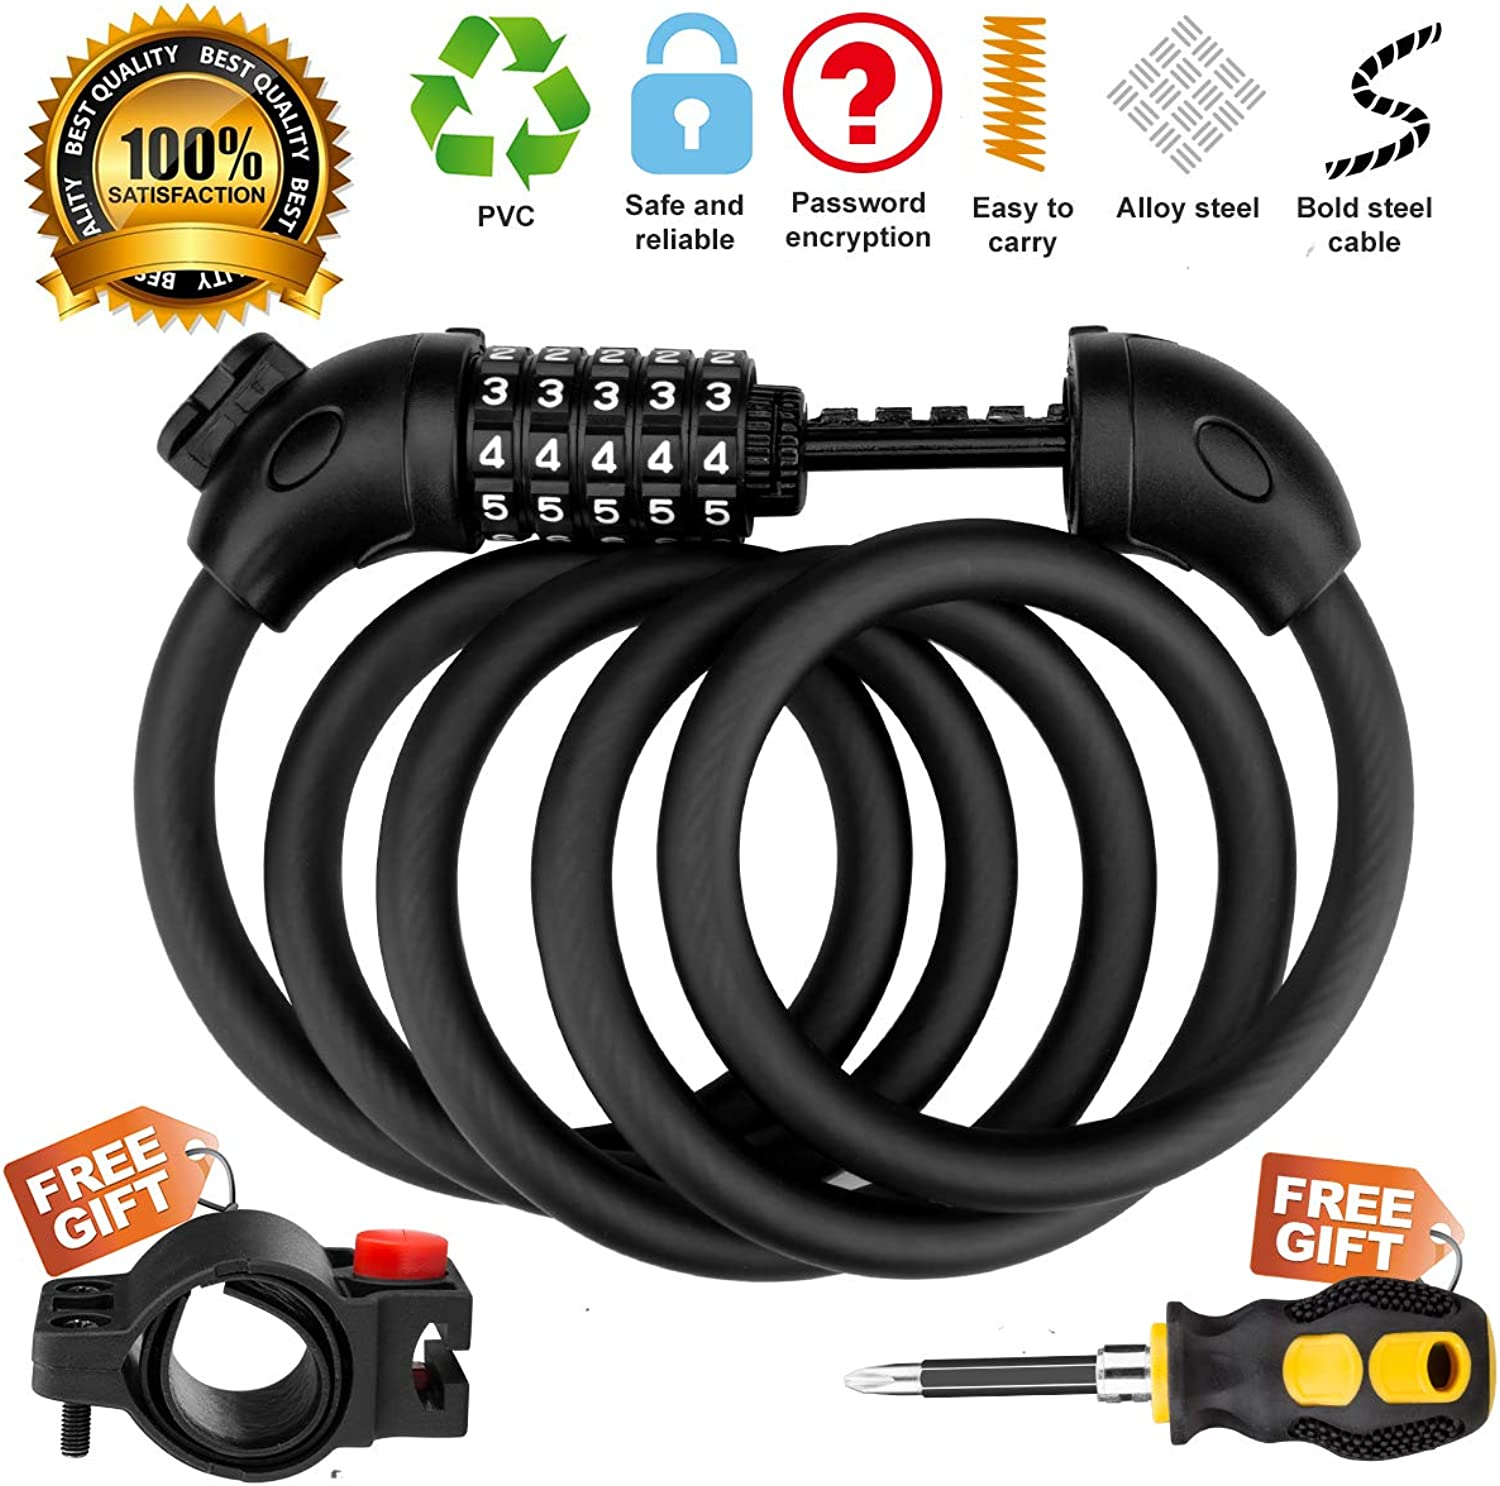 Jade Cloud Bike Lock Cable 4.9 Feet Bike Cable Basic Self Coiling Resettable 5Digit Combination with Complimentary Mounting Bracke and a Screwdriver for Installing The Lock